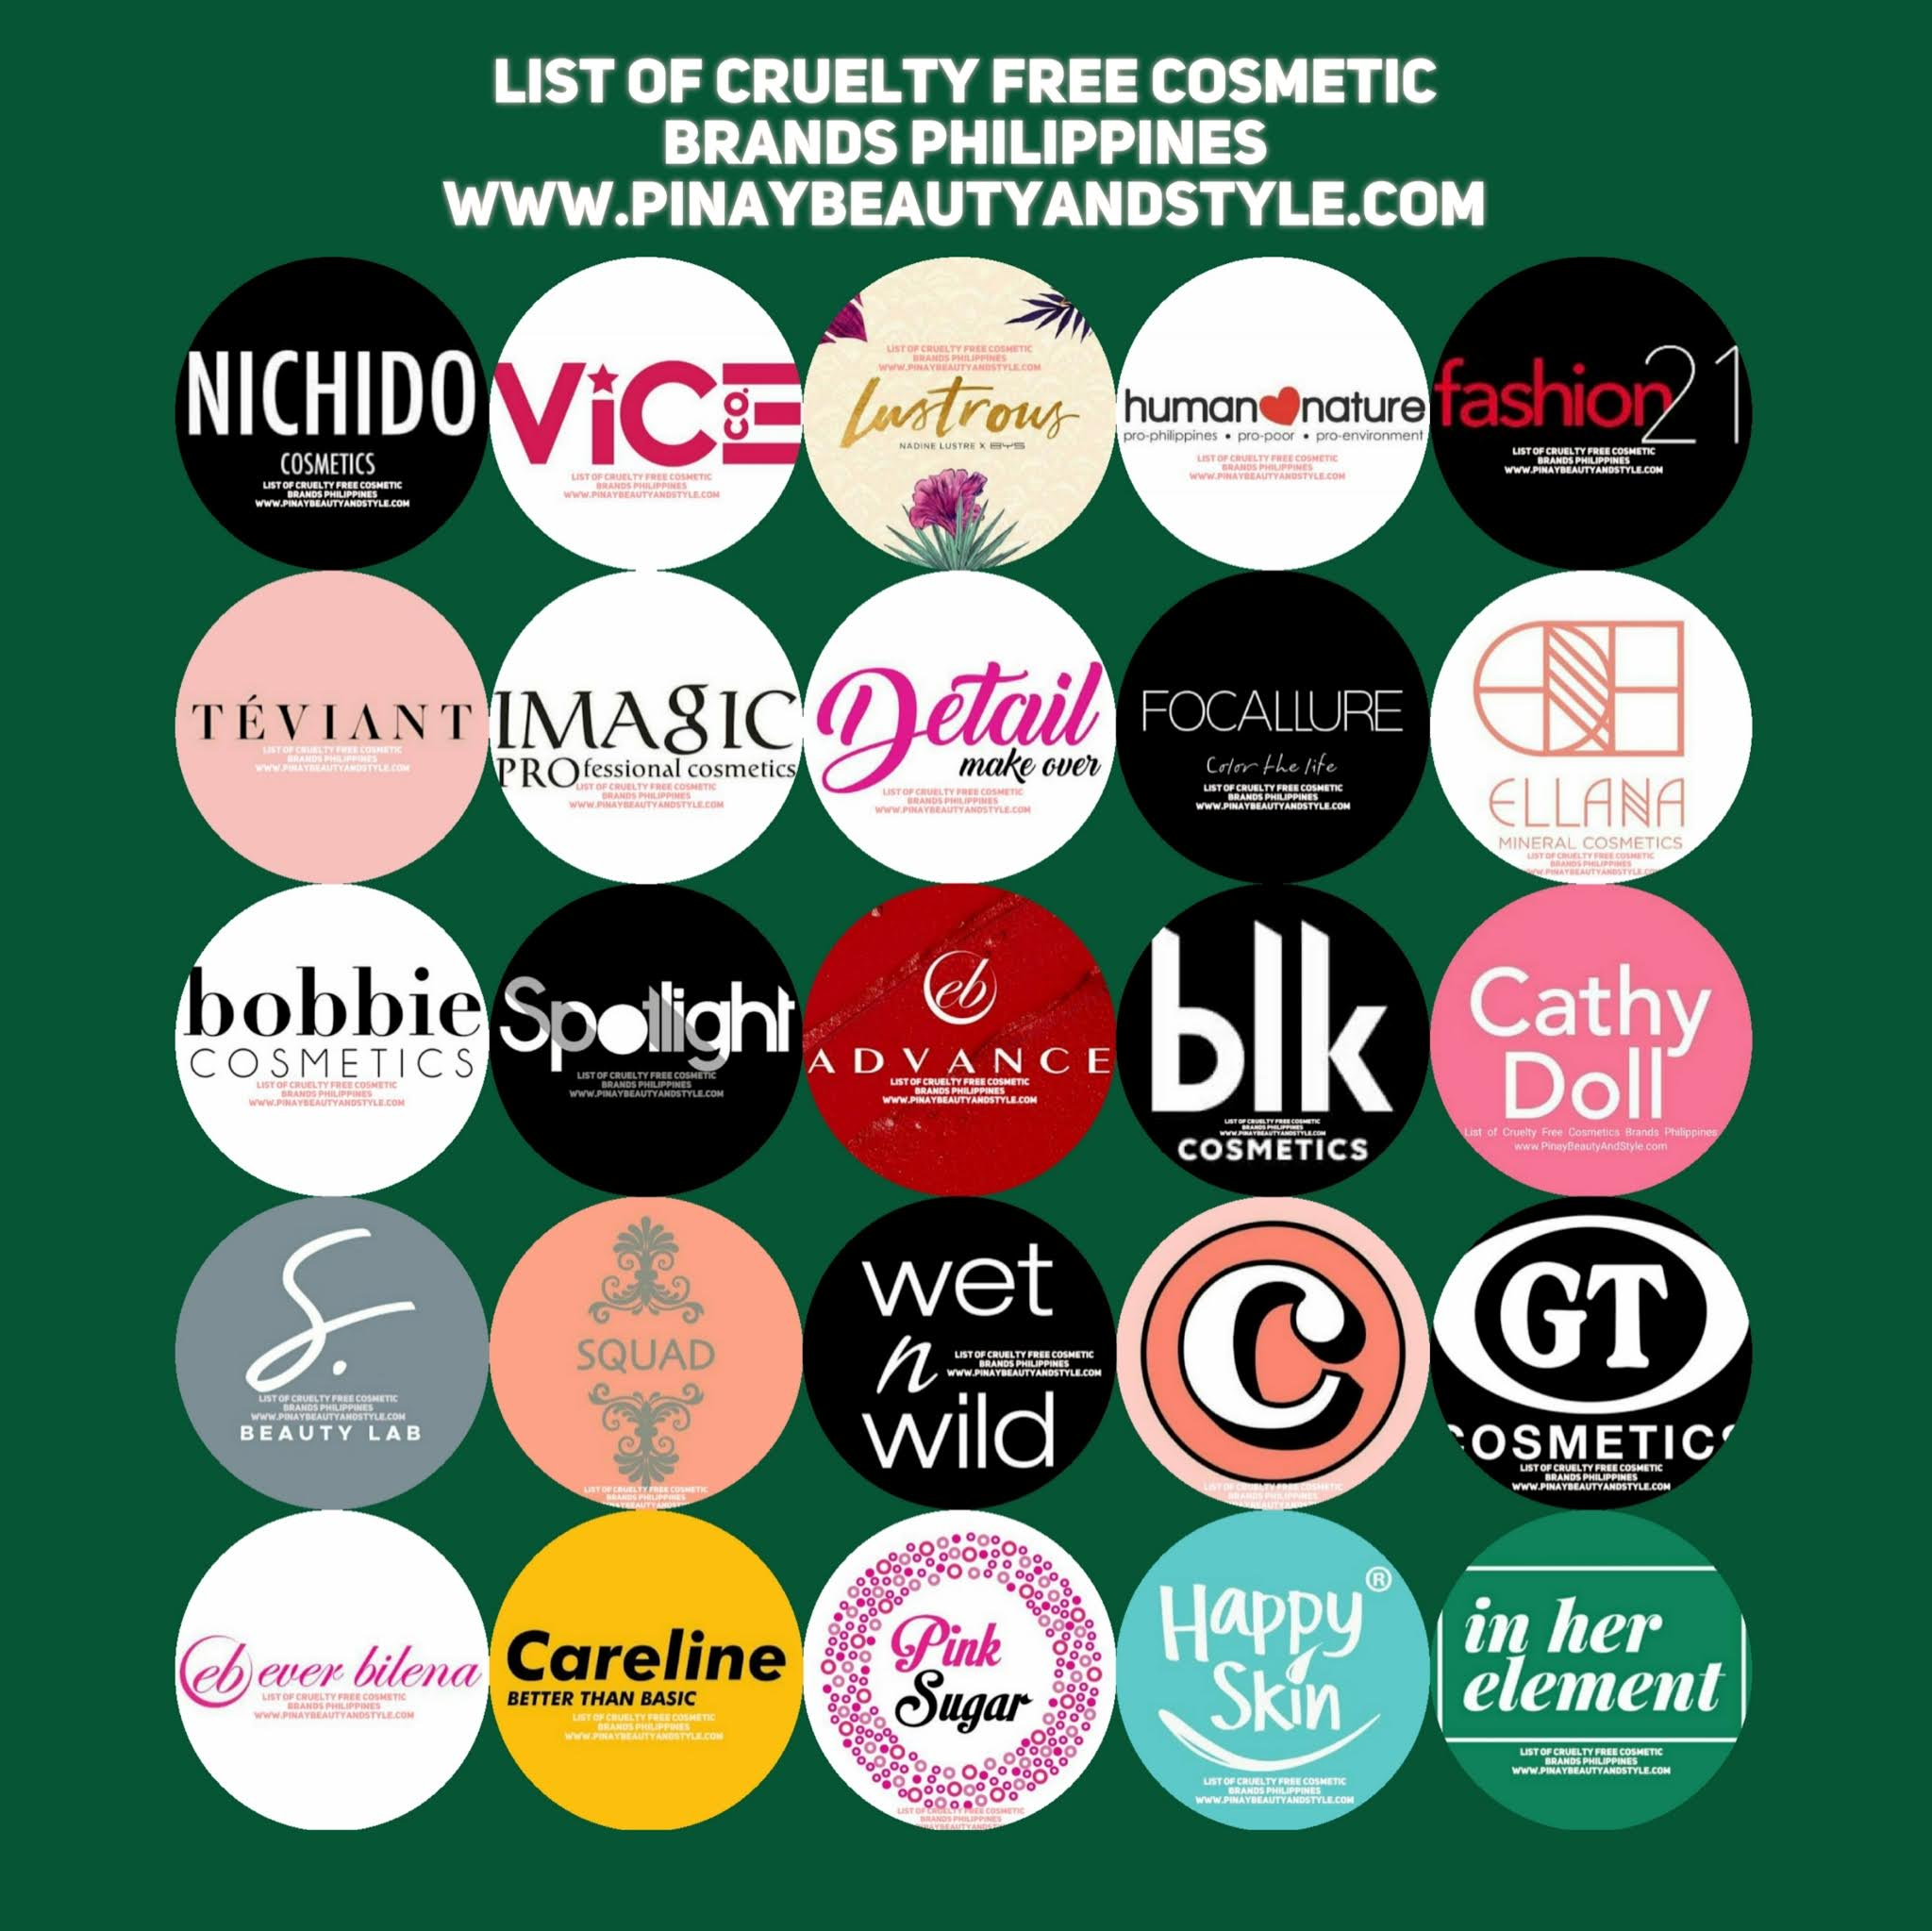 Pinay Beauty and Style 20 Cruelty Free Cosmetic Brands ...